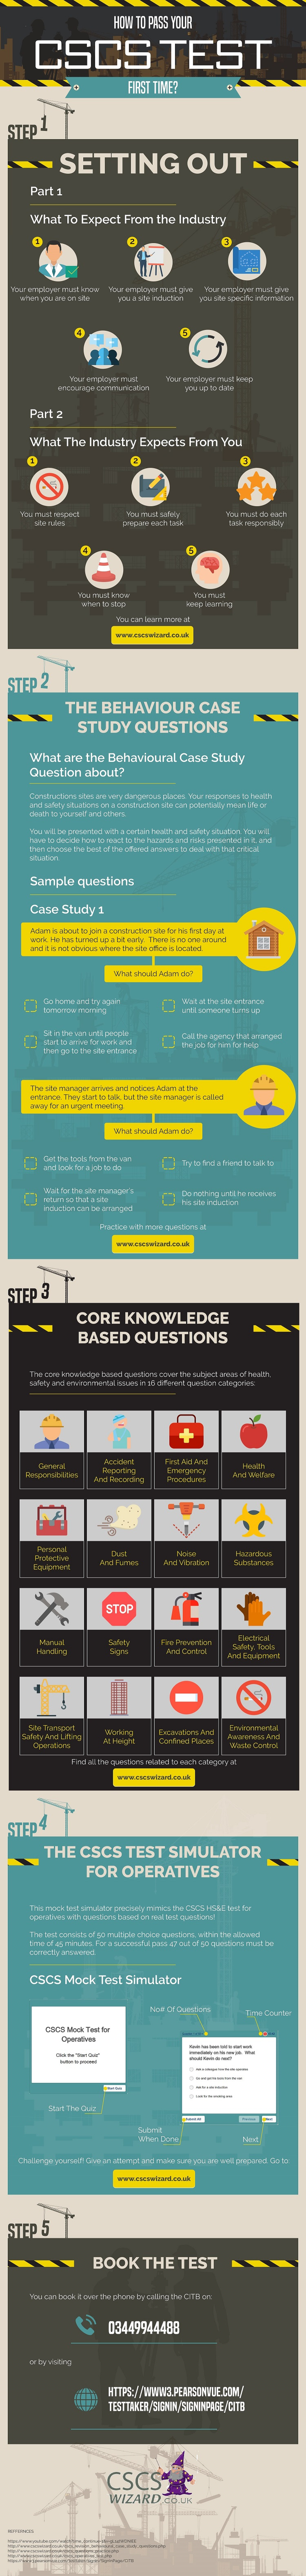 How to pass your CSCS test first time? Infographic